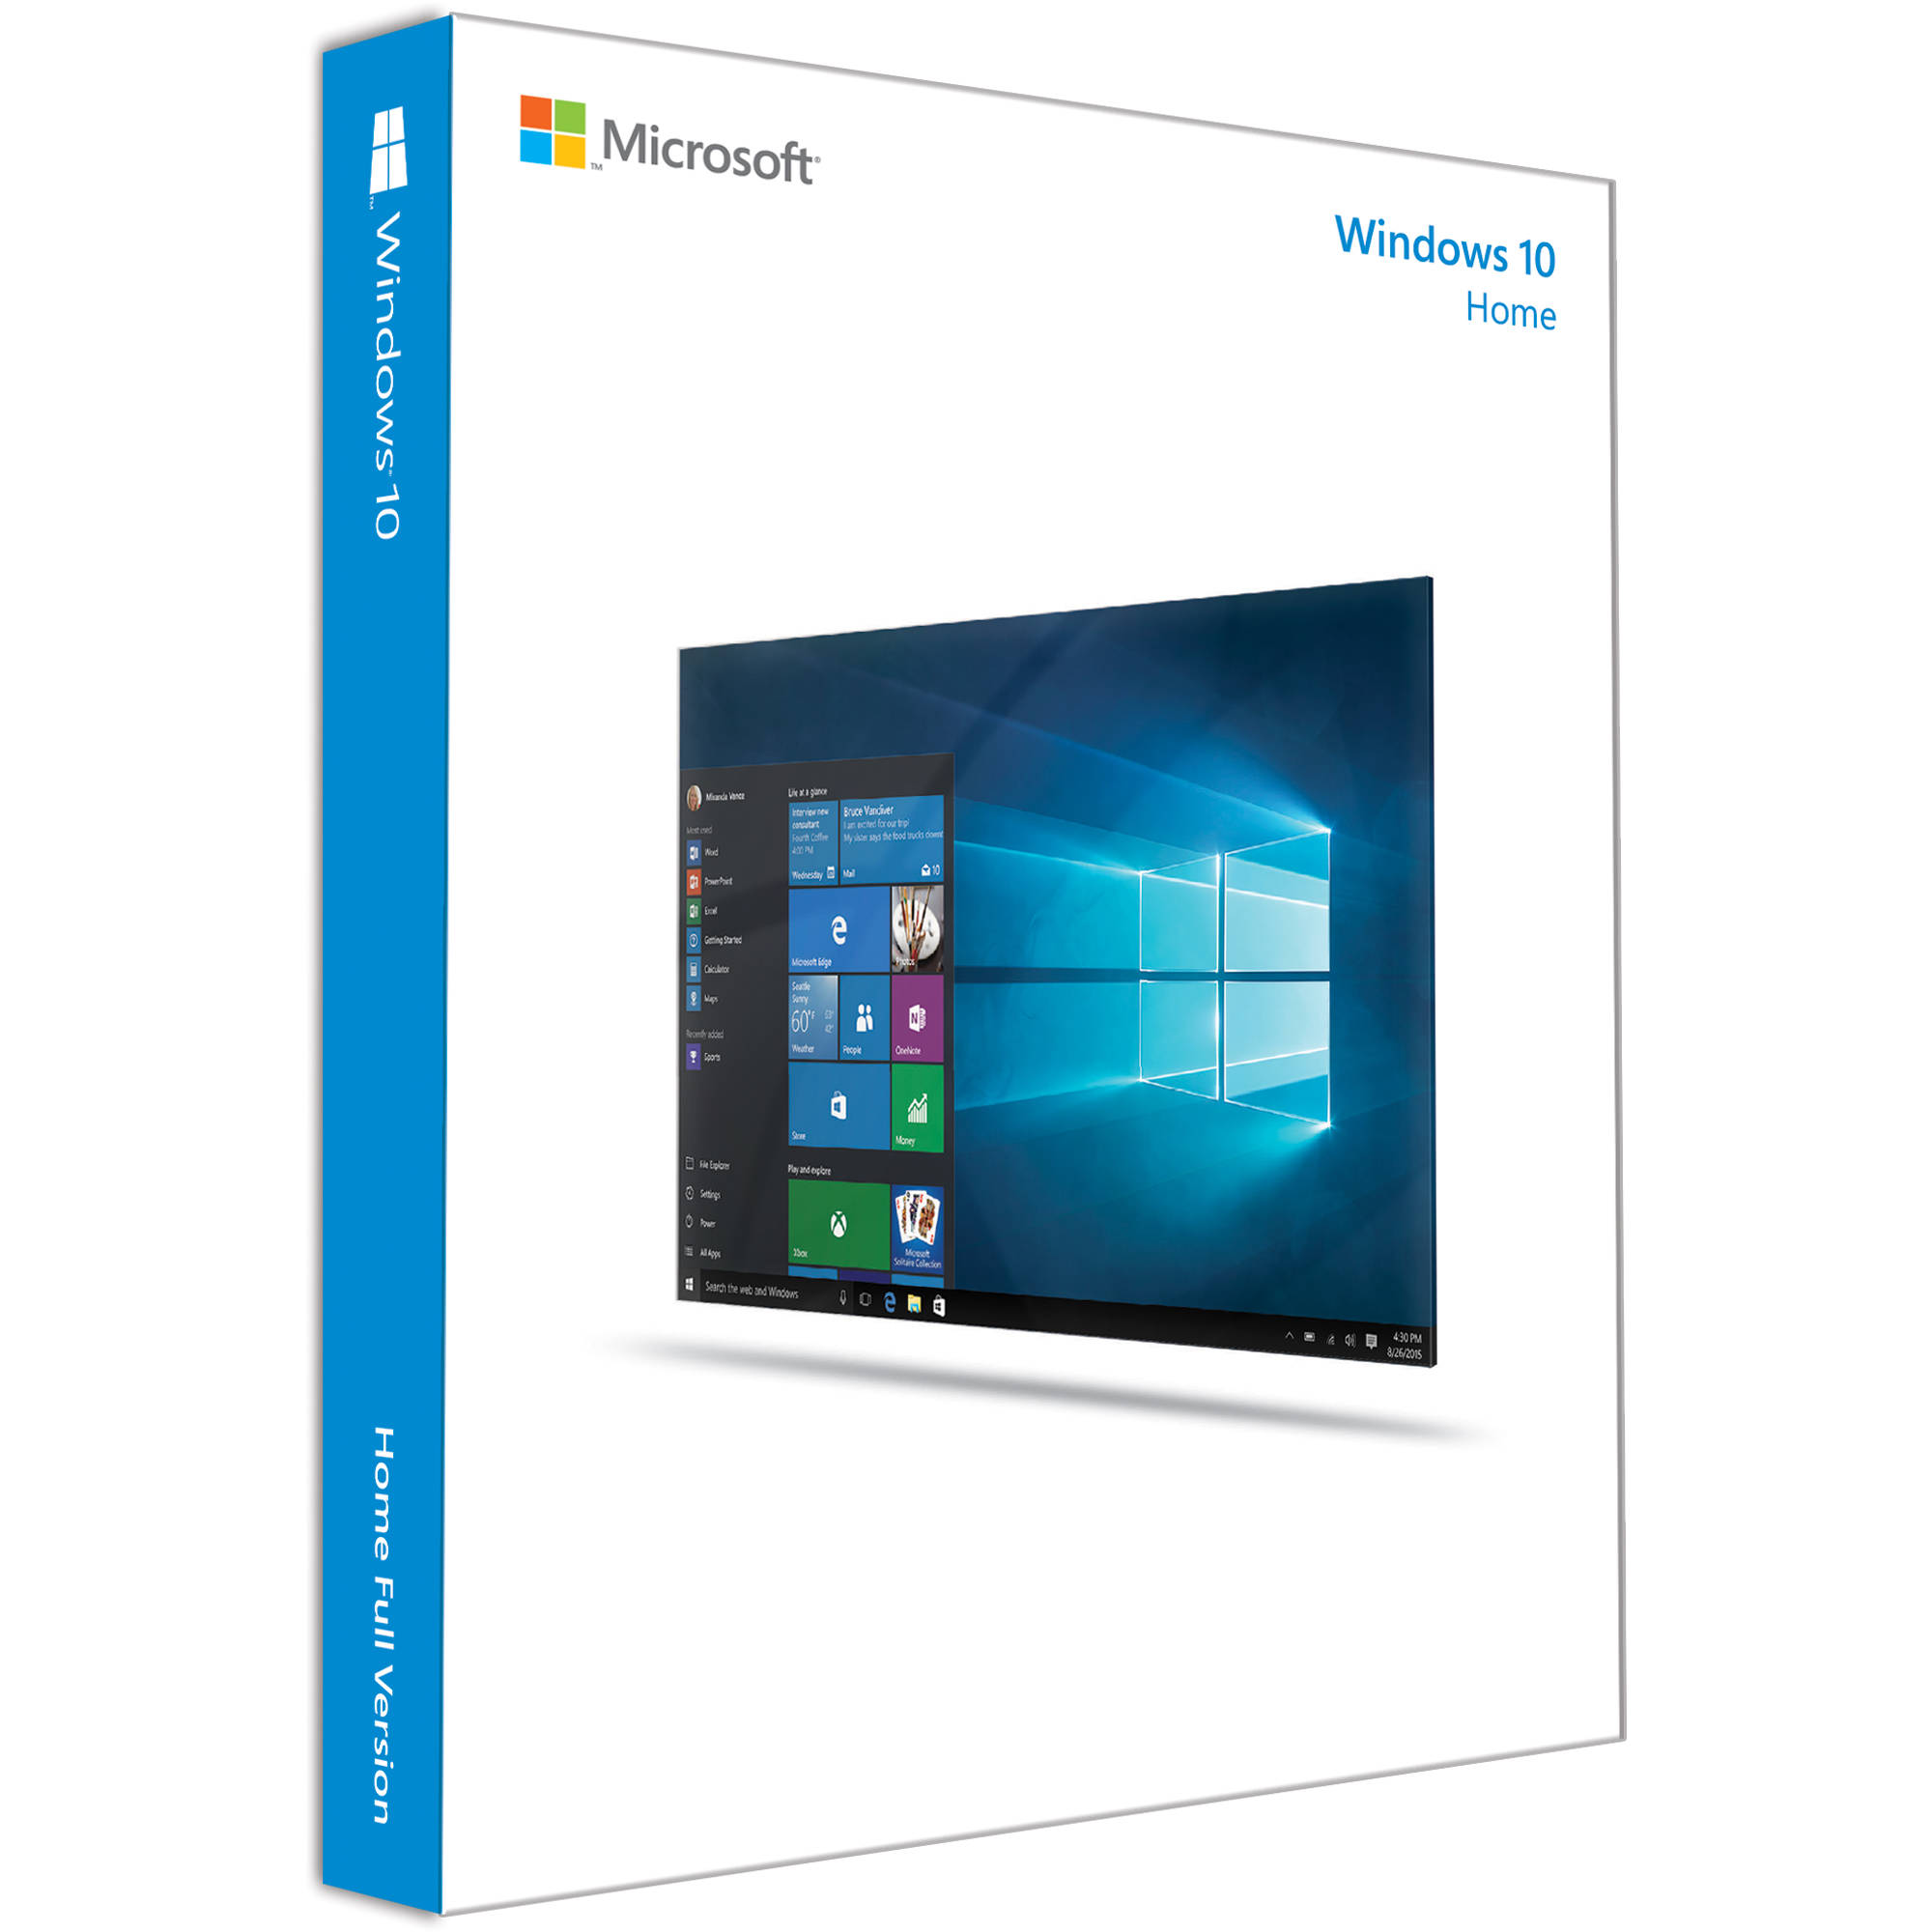 Microsoft windows 10 home kw9 00140 b h photo video for Microsoft windows 10 home